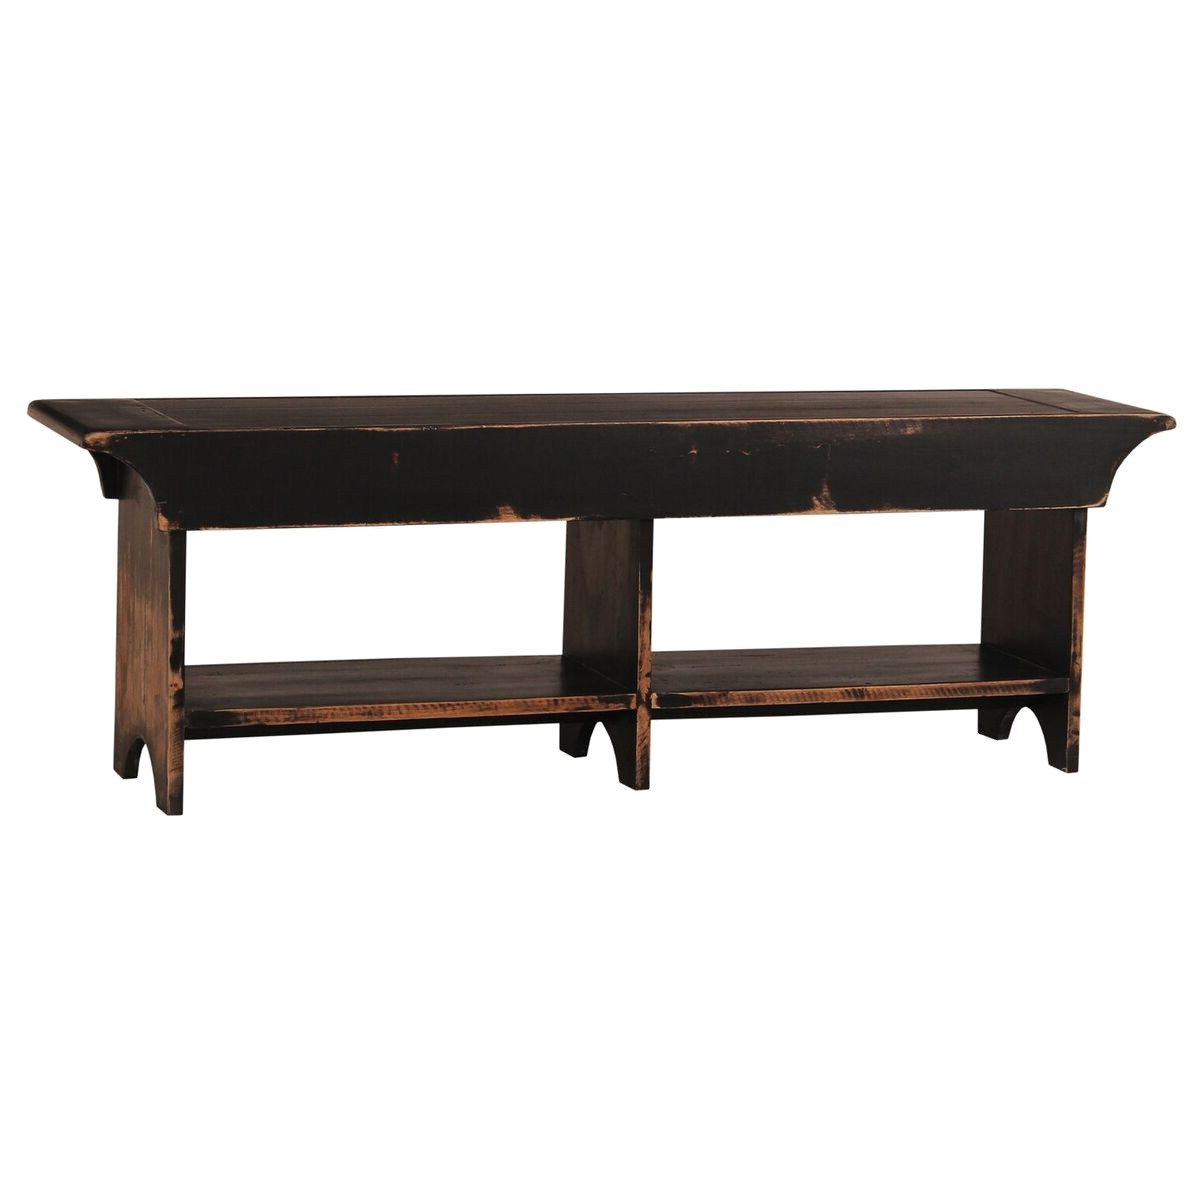 Clamecy Mahogany Timber Bench, 140cm, Distressed Black